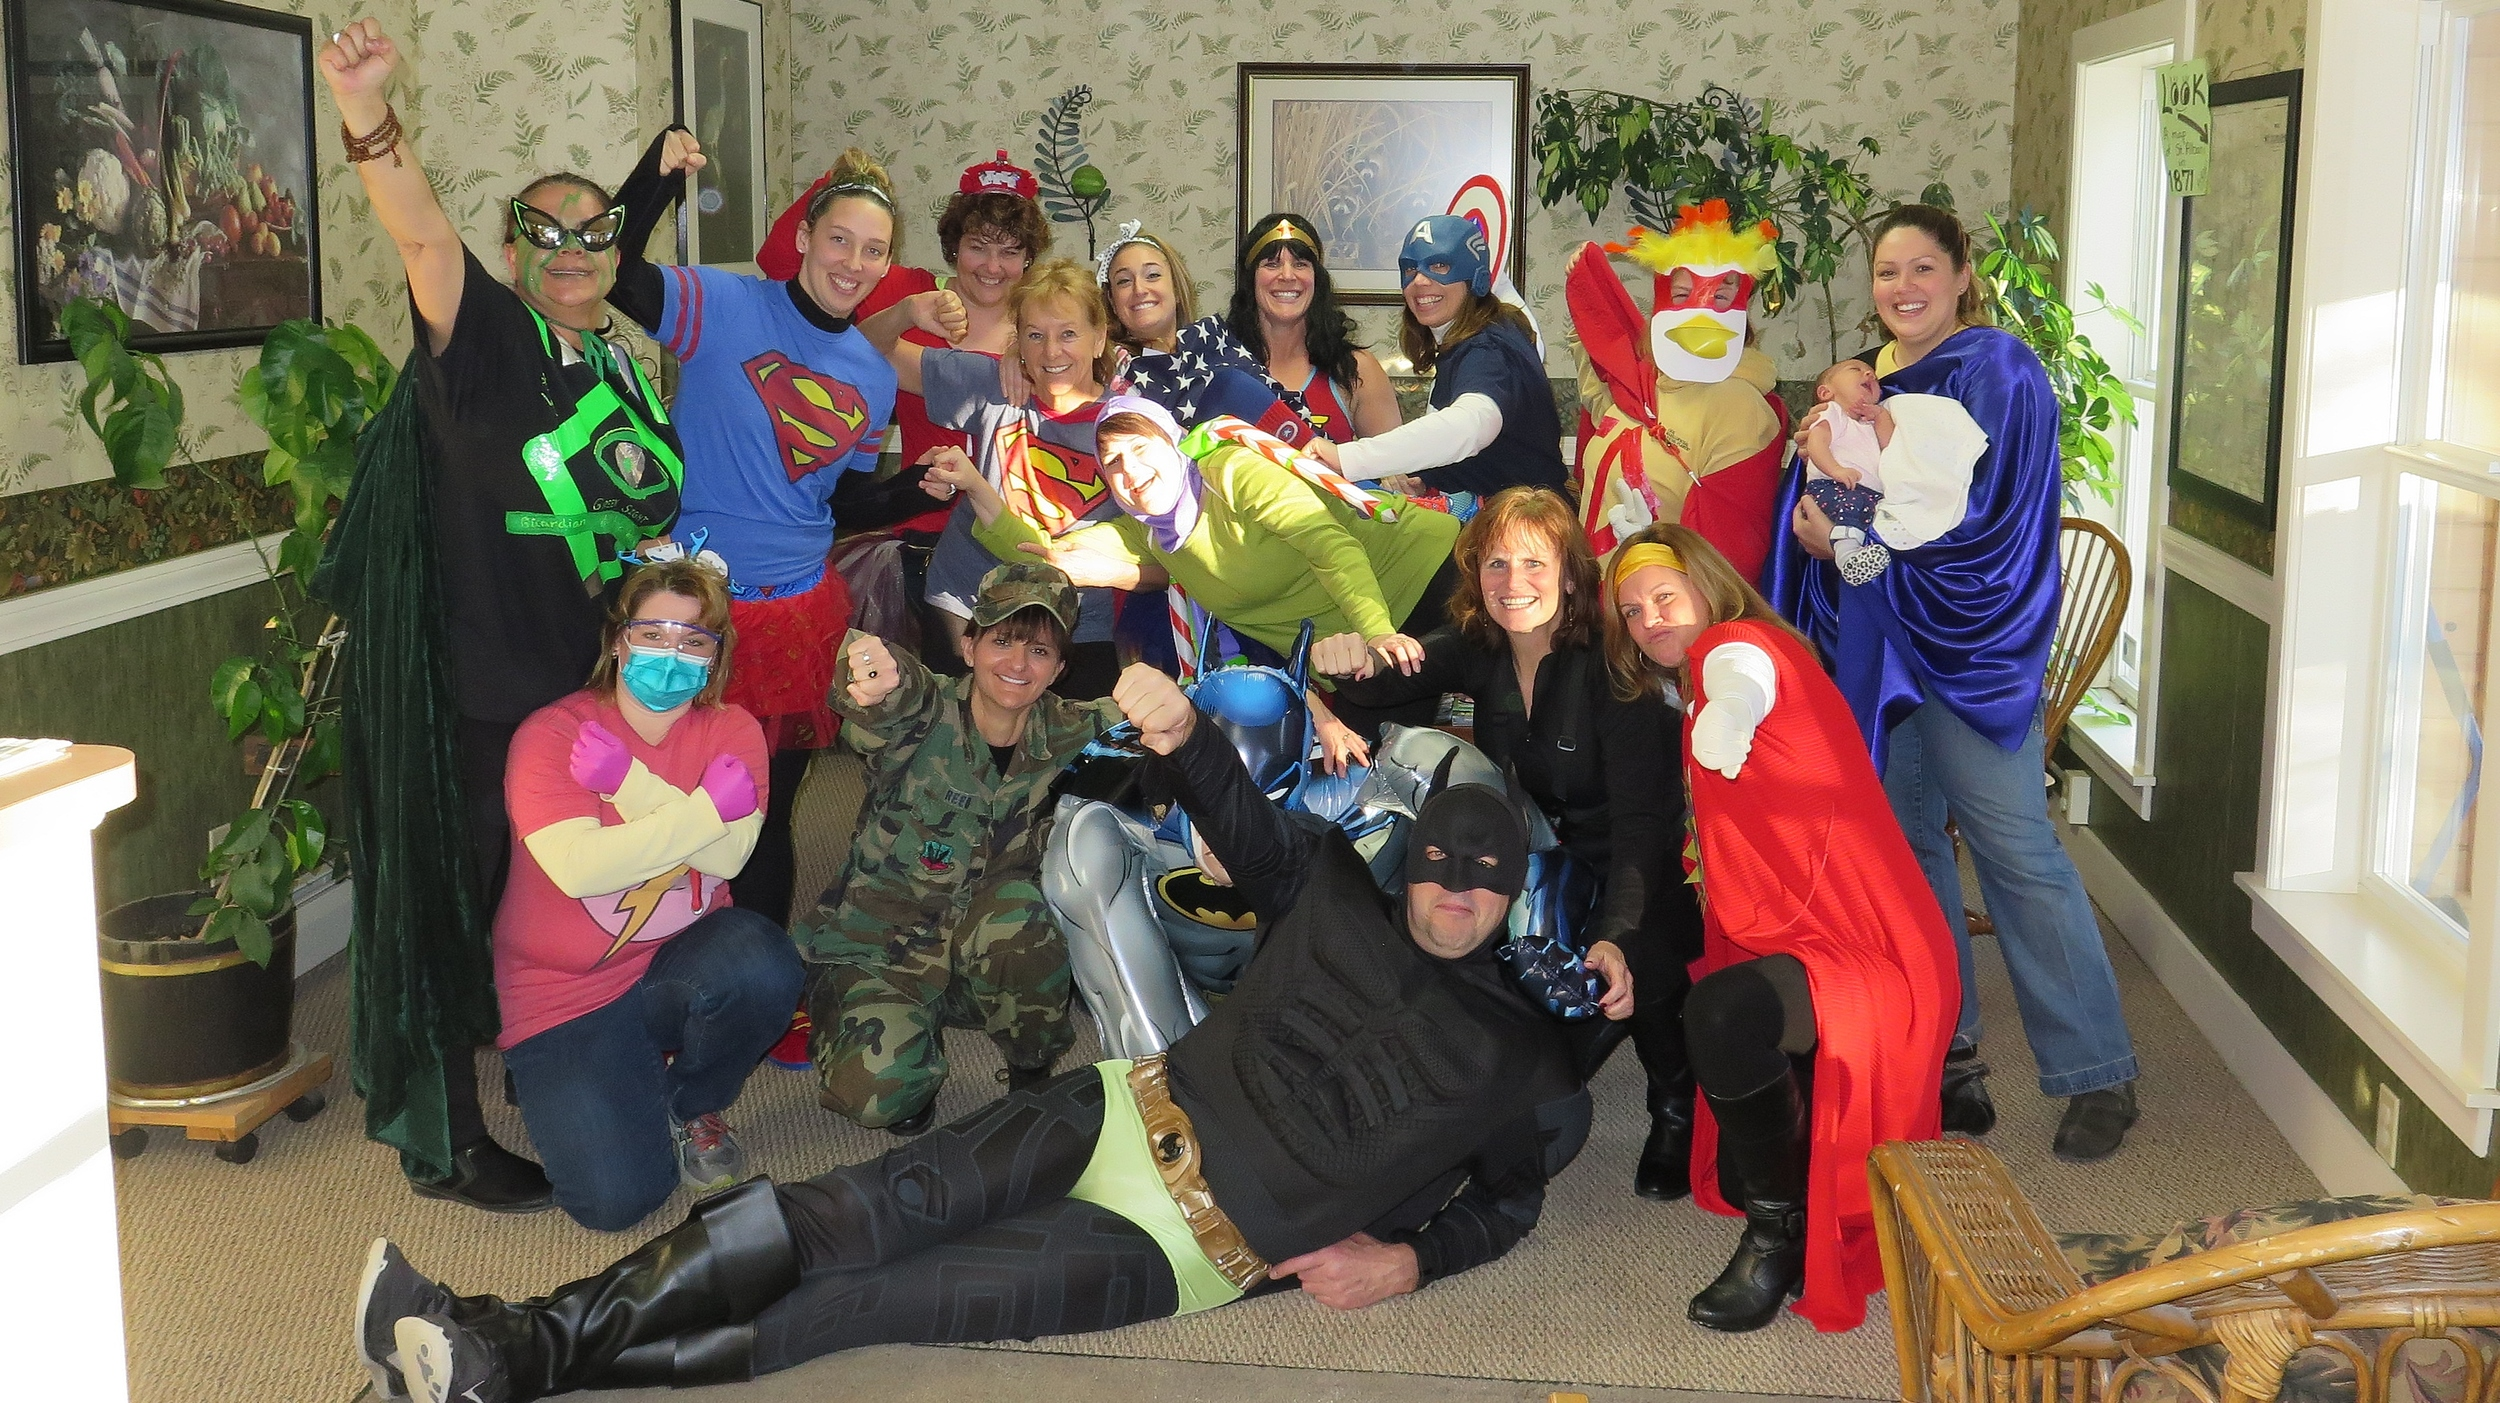 at a recent annual planning day, we all came dressed as our favorite super hero and spent the day in costumes learning and planning for the coming year.